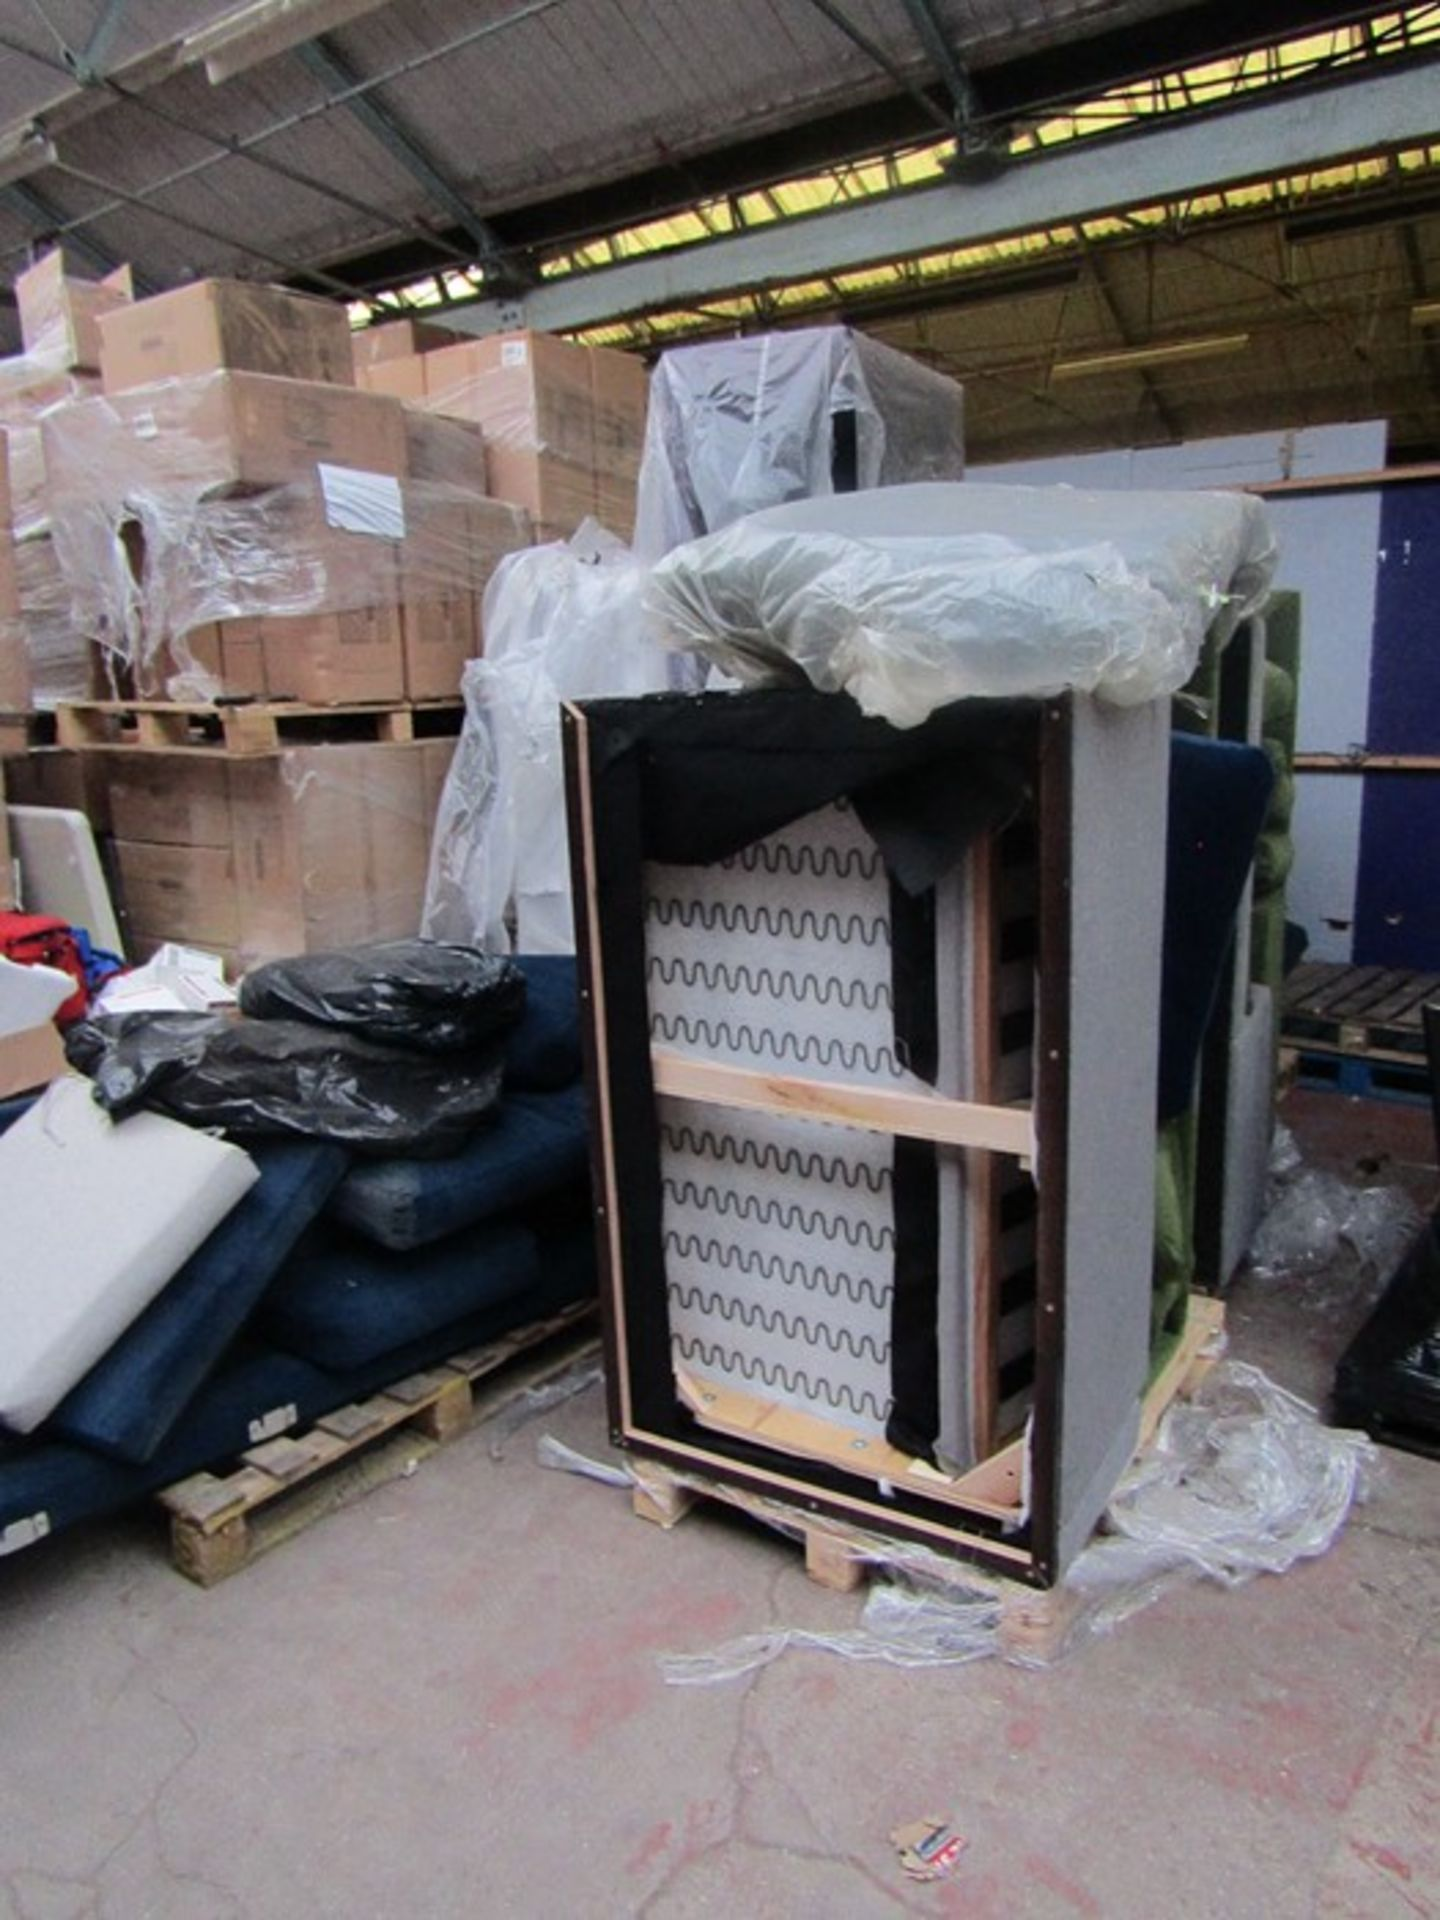 | 7x | PALLETS OF SWOON SOFA PARTS AND MISSING CUSHIONS SOFAS, PLEASE NOTE THESE ARE ALL